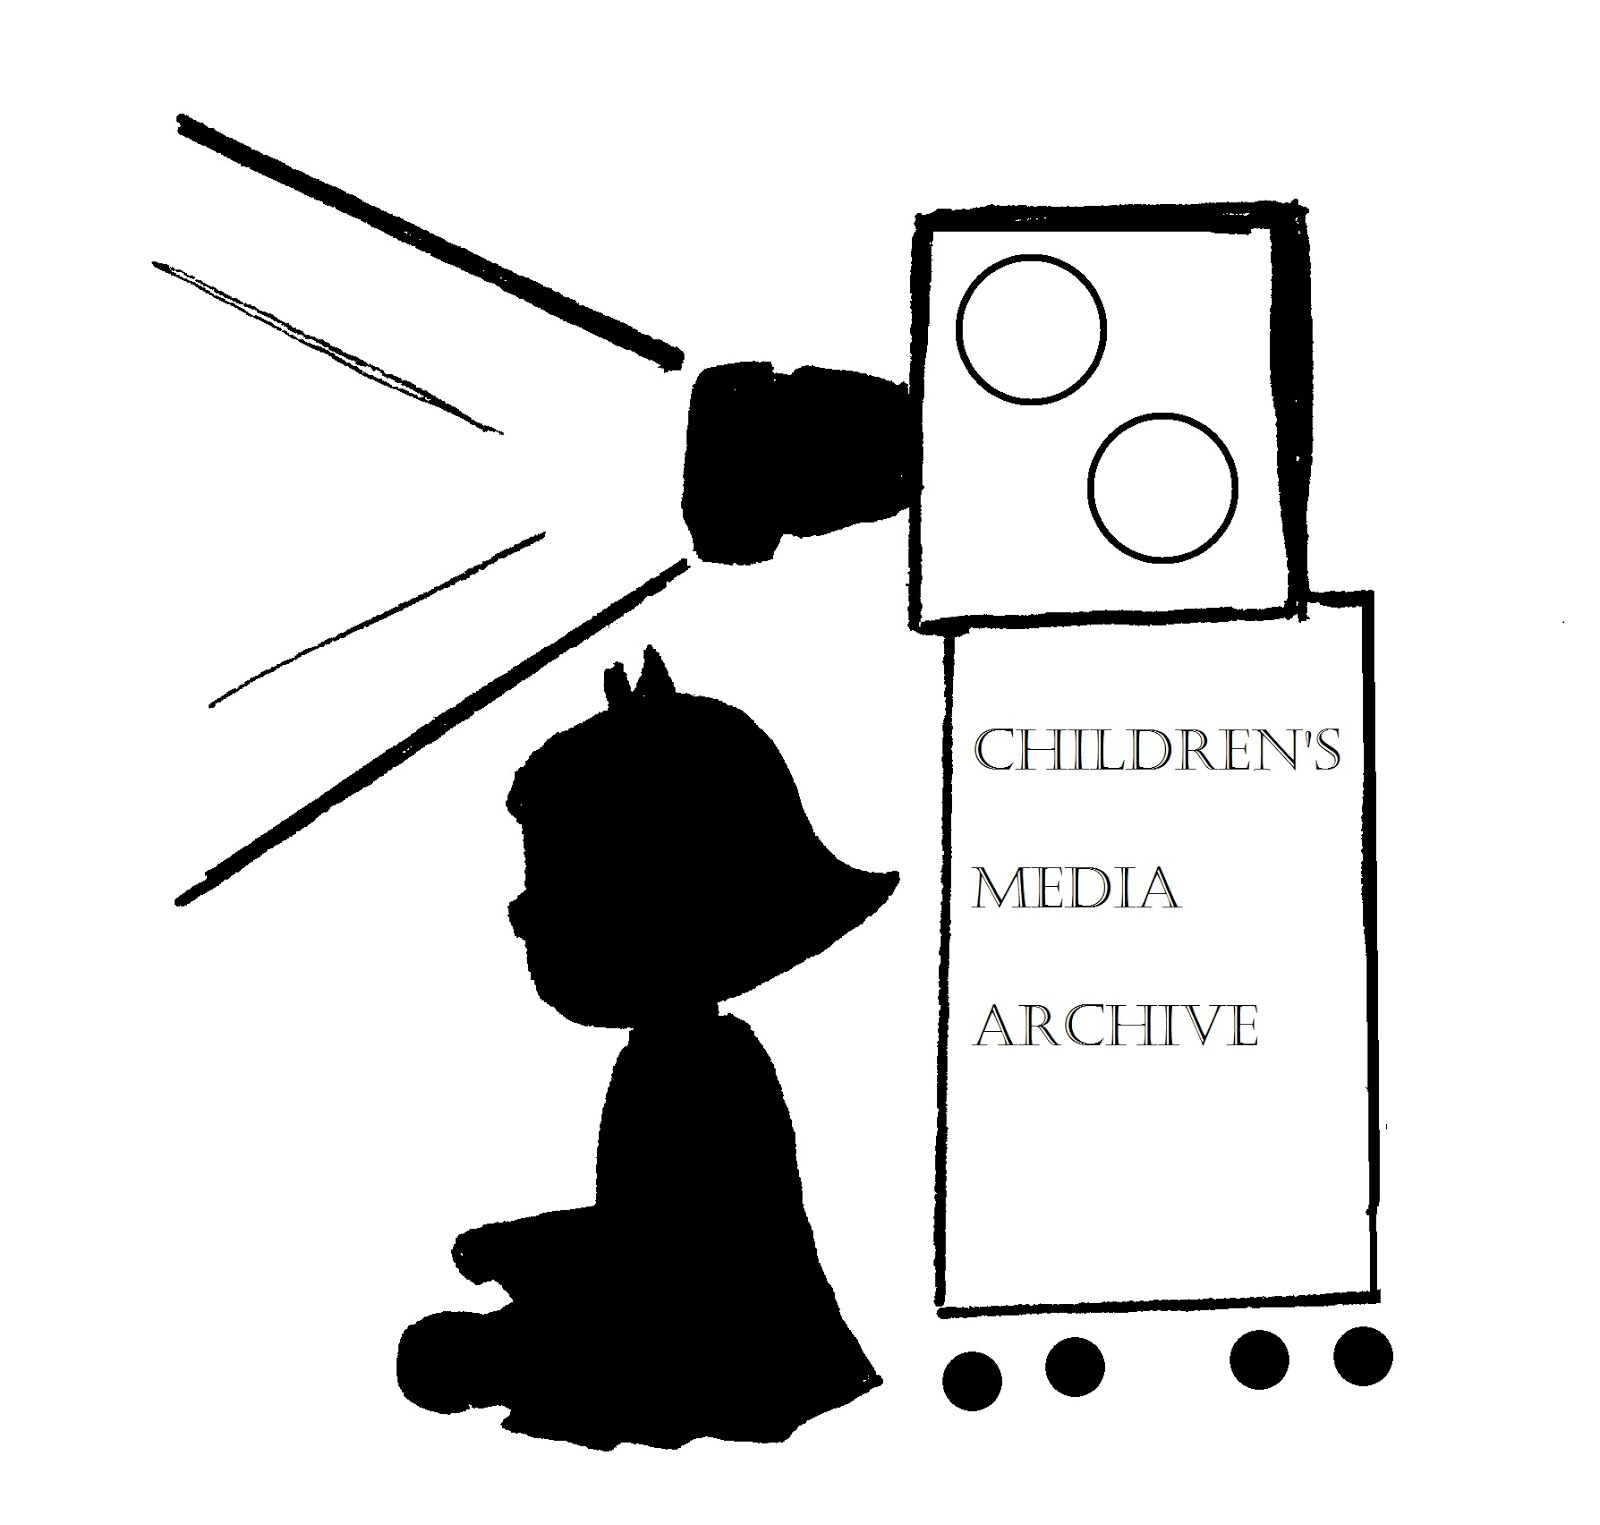 Children's Media Archive